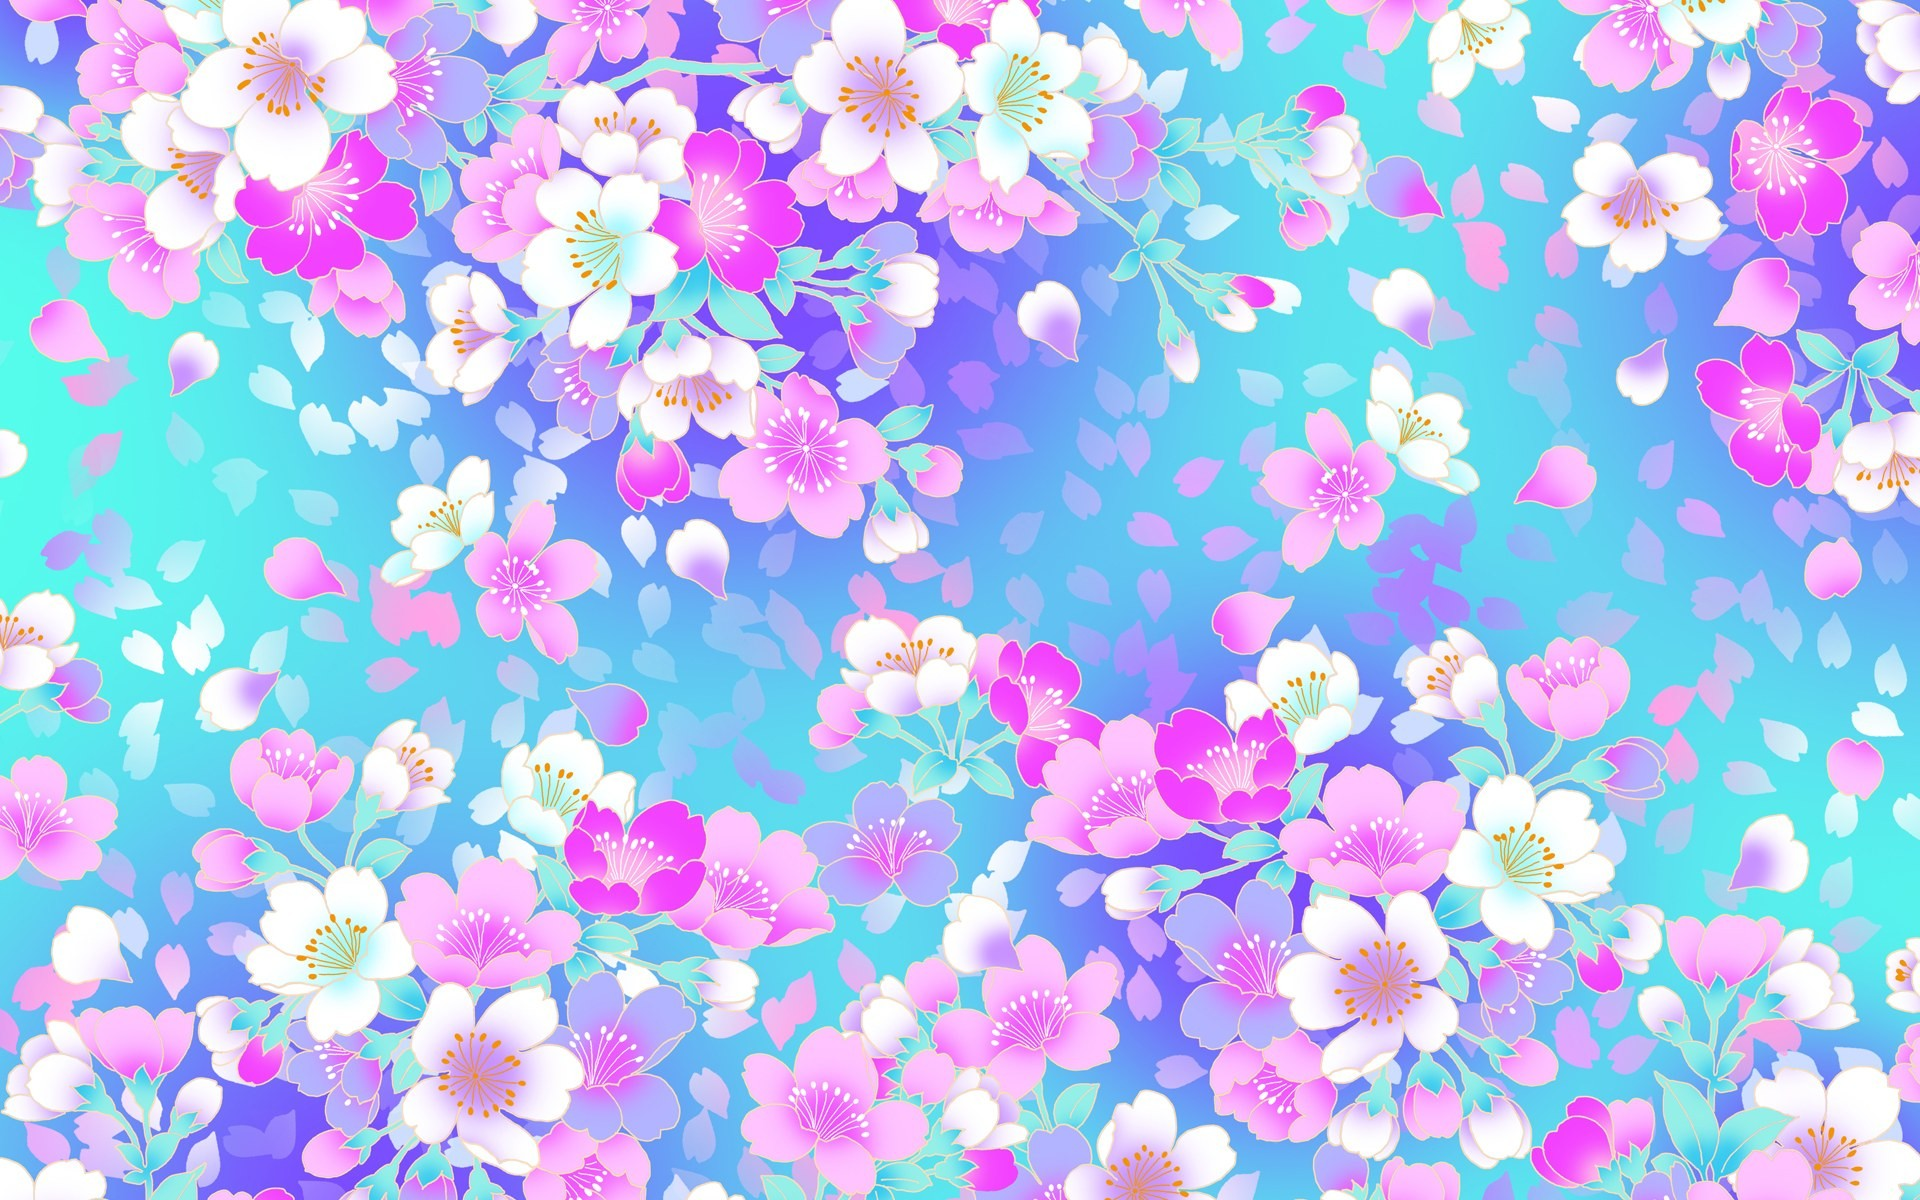 Iphone Wallpaper Pinterest Girly Wallpaper 183 ① Download Free Cool Hd Backgrounds For